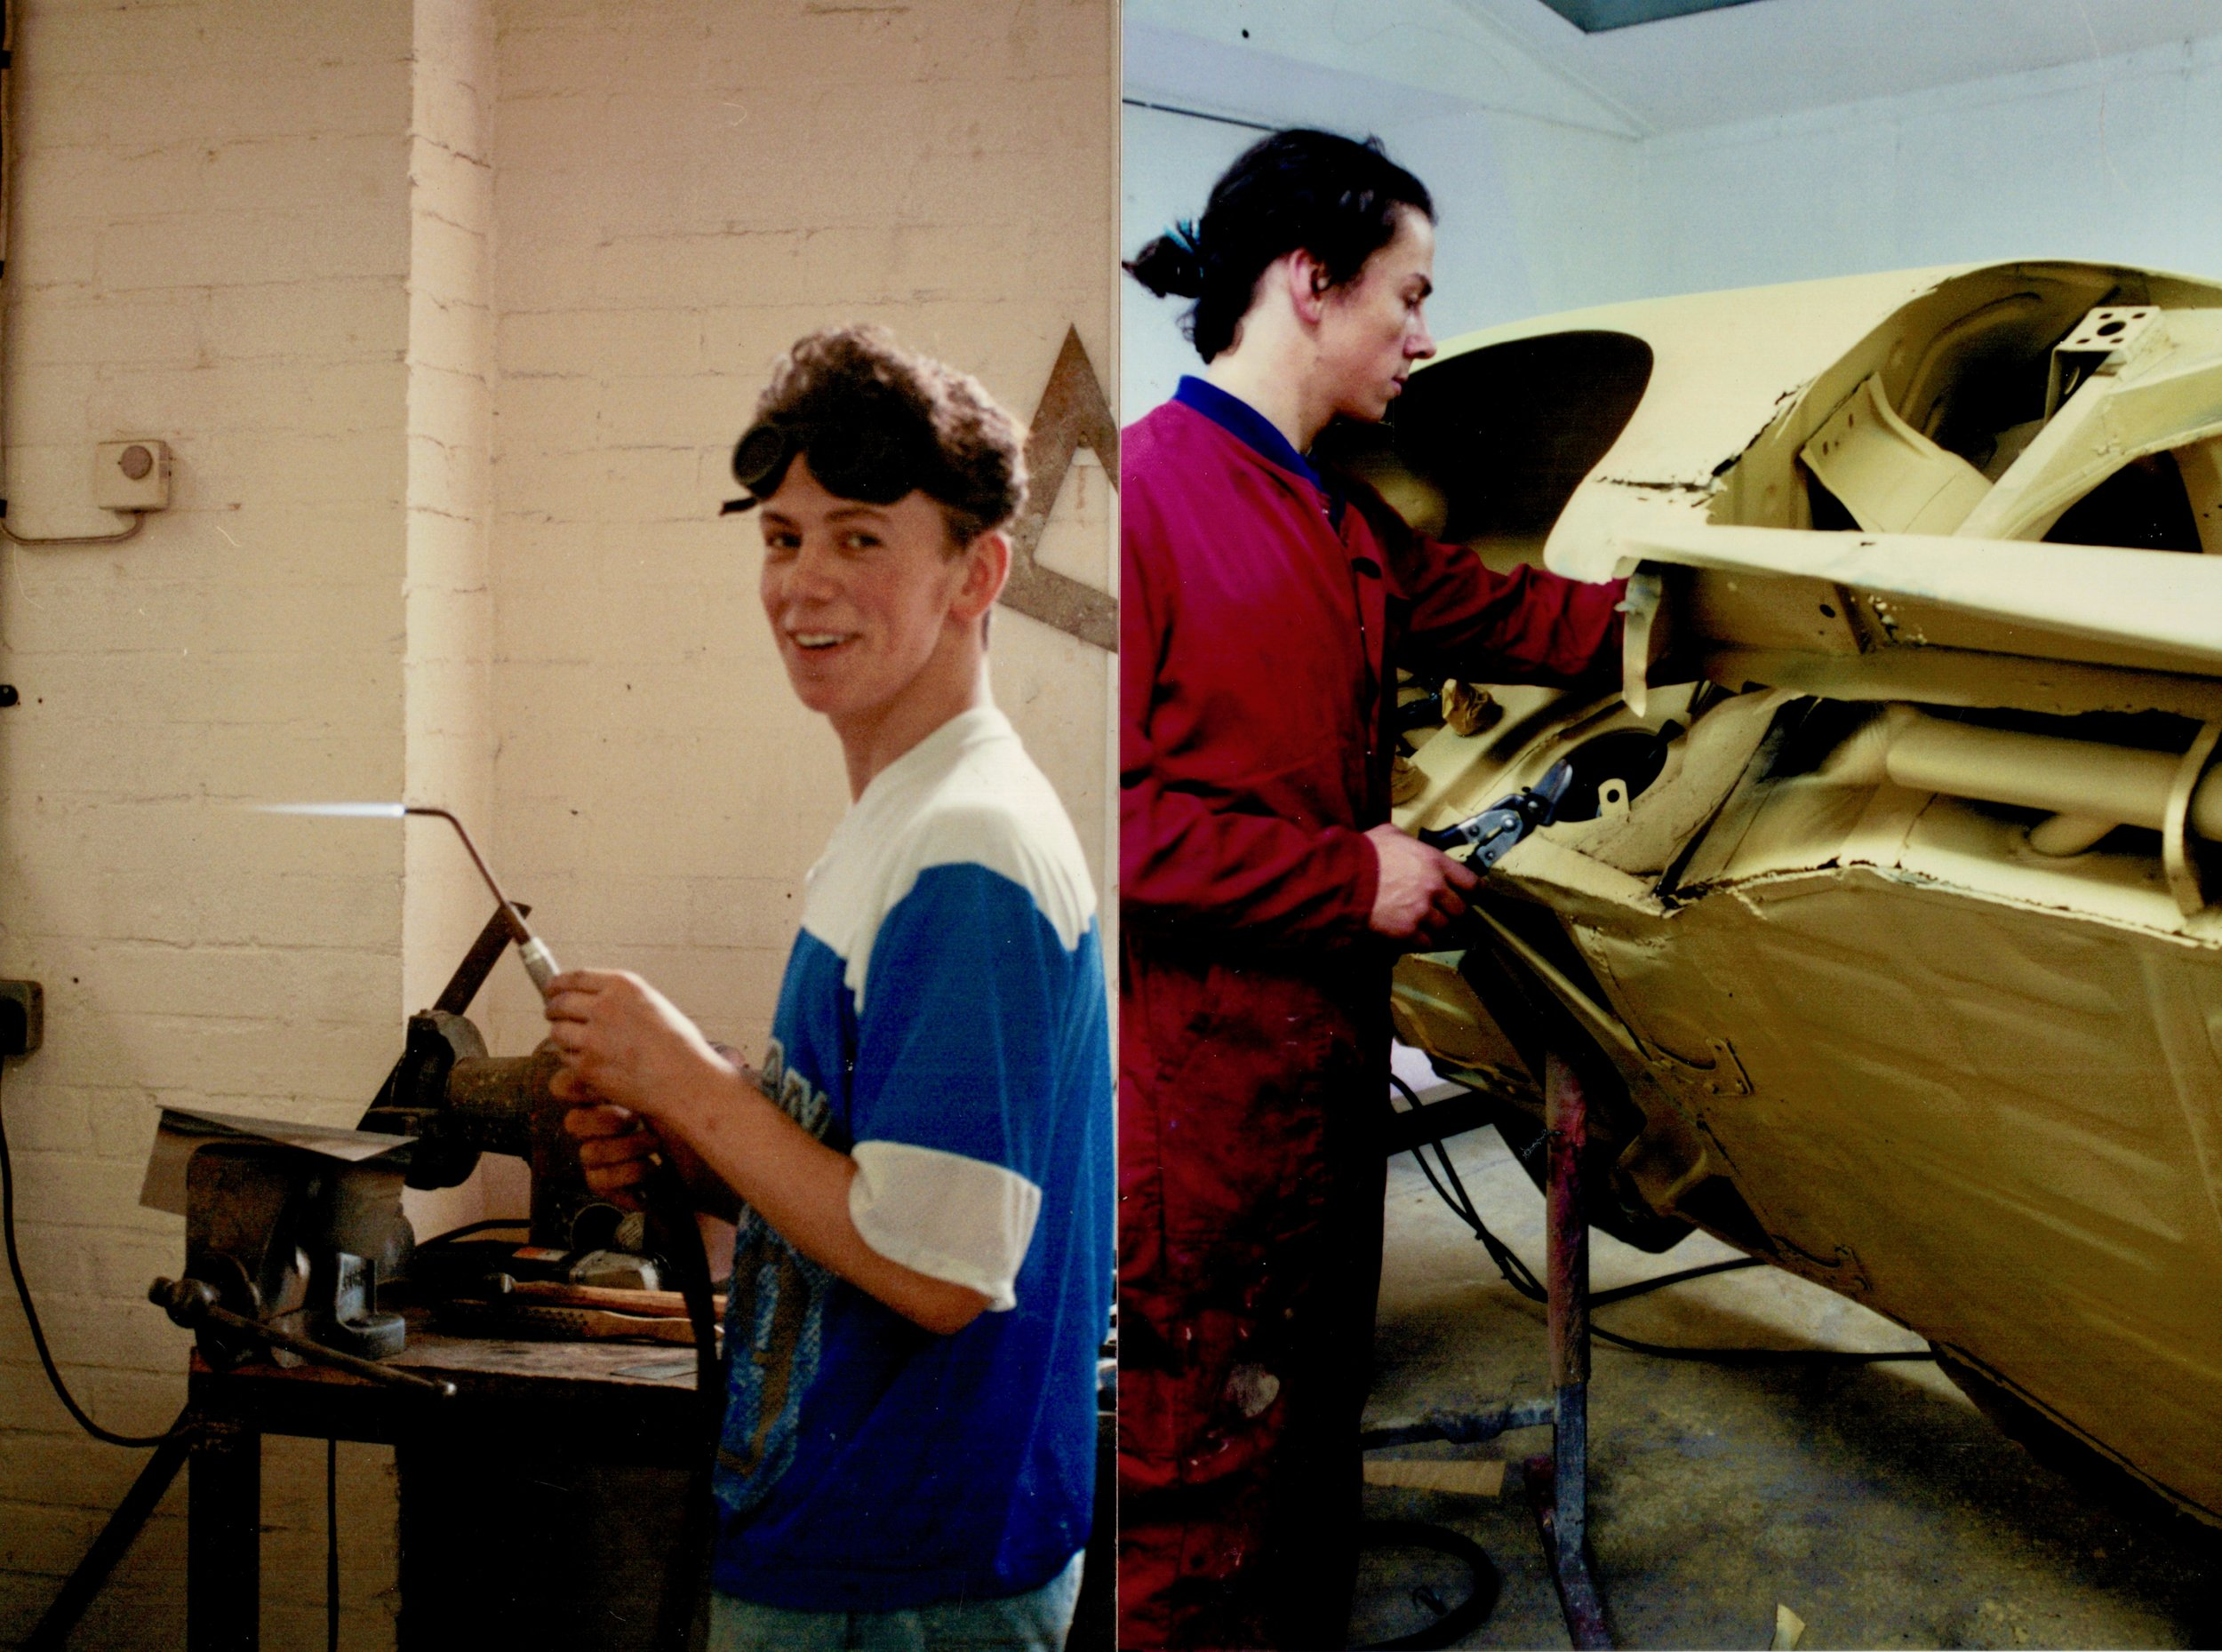 16 year old Rorky learning to gas weld.            21 years old restoring his 356A.